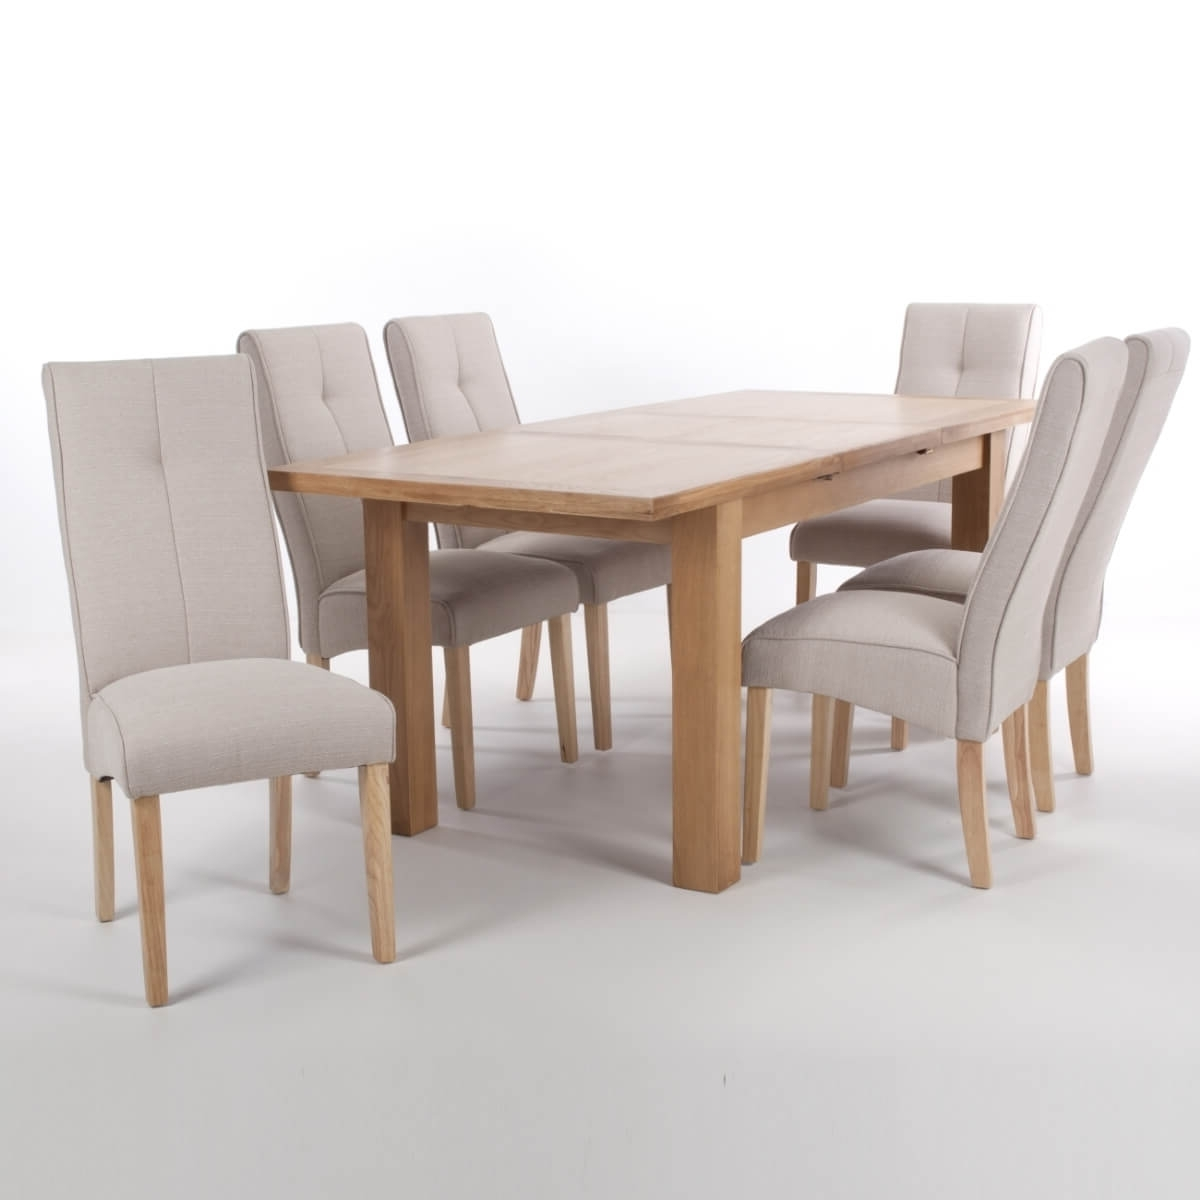 2018 Cream And Oak Dining Tables With Regard To Dining Set – Solid Oak Extending Dining Table And 6 Linea Cream (Gallery 8 of 25)